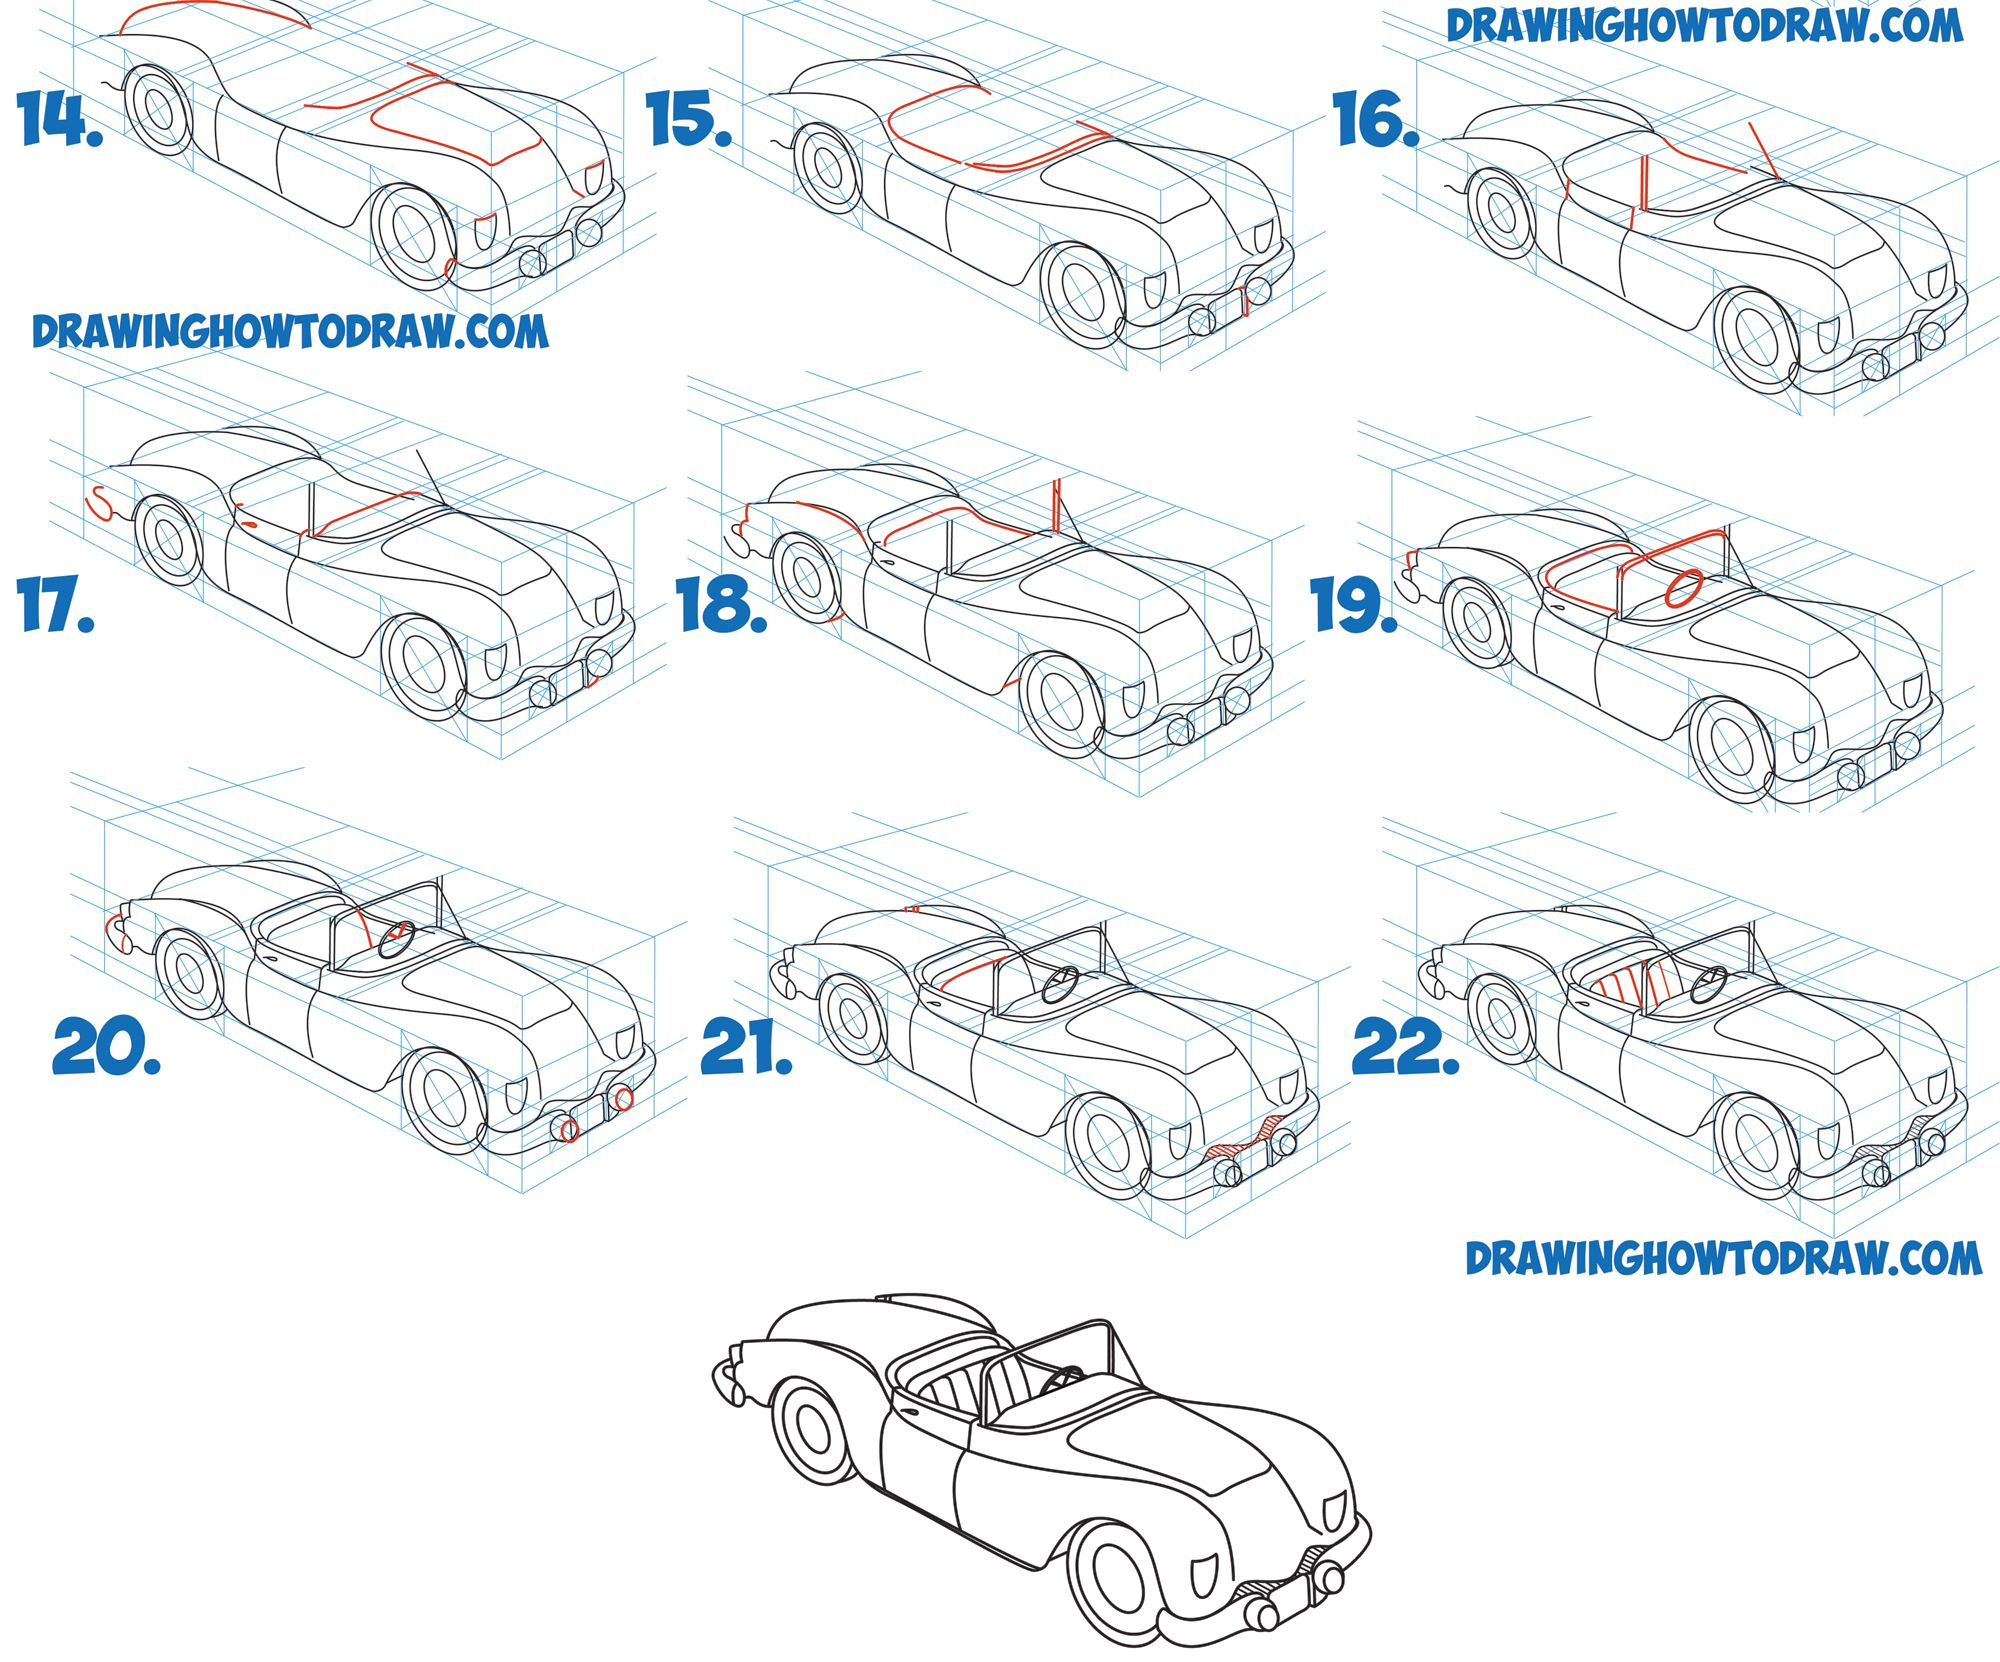 learn how to draw a car convertible in 2 pt perspective in simple steps drawing lesson